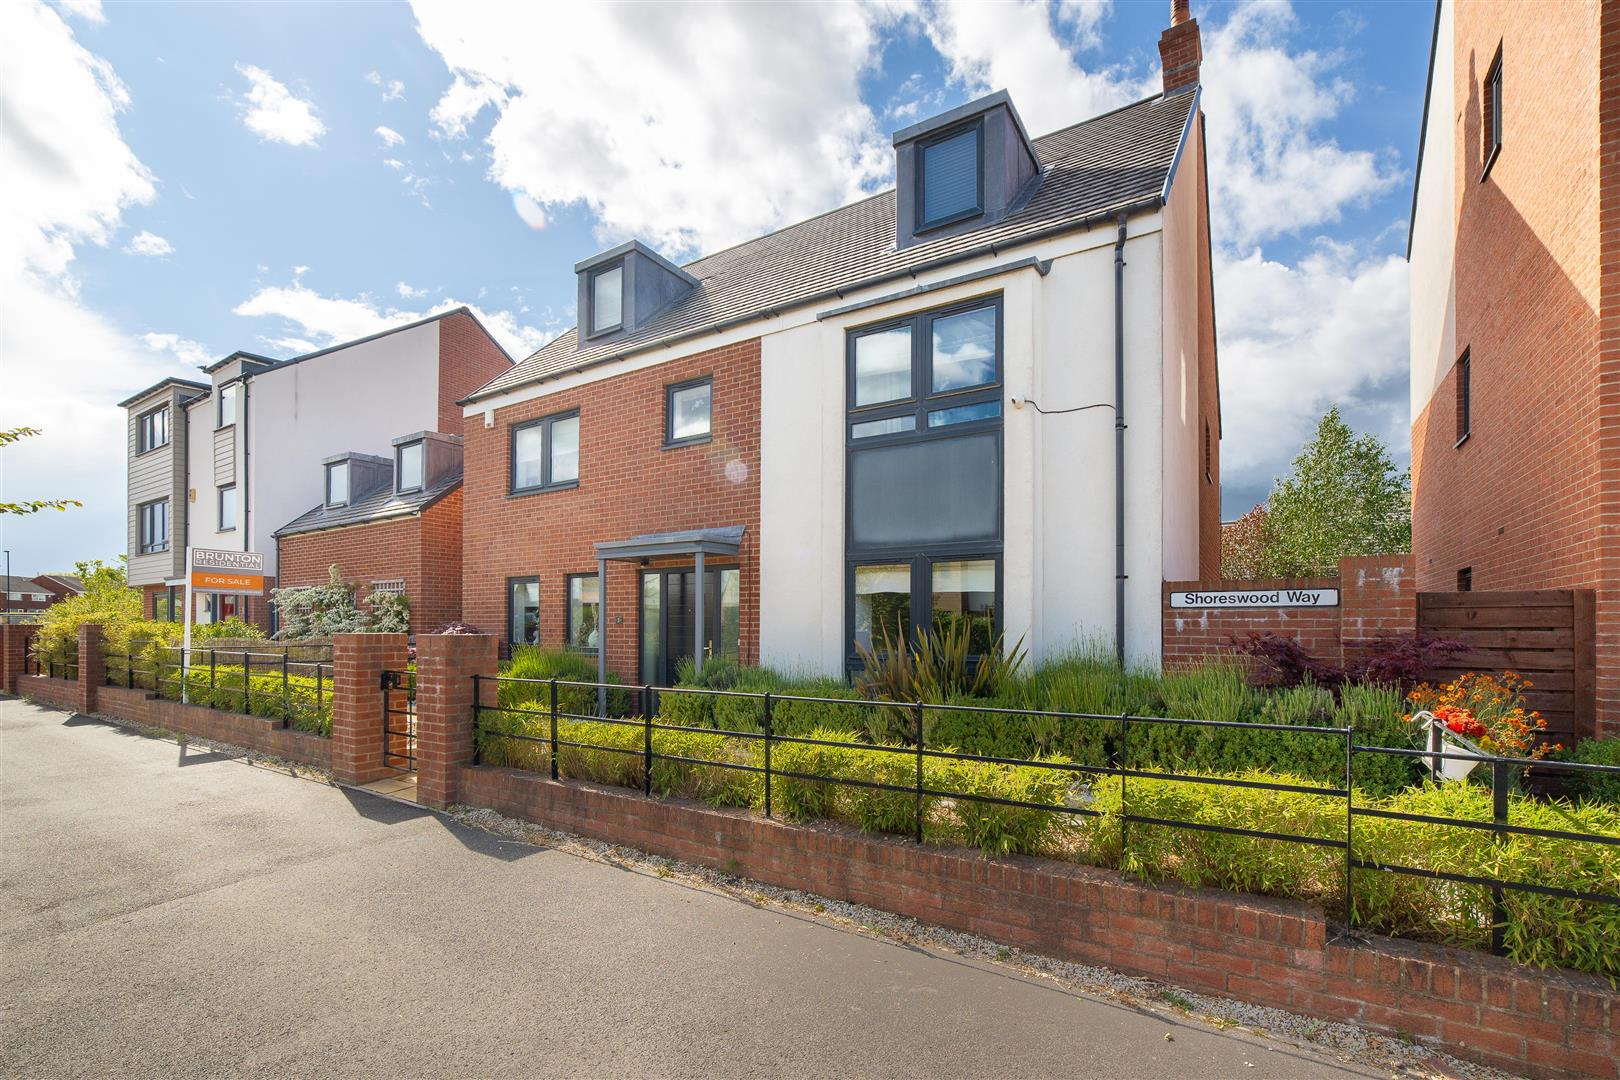 5 bed detached house for sale in Newcastle Upon Tyne, NE13 9AE  - Property Image 1